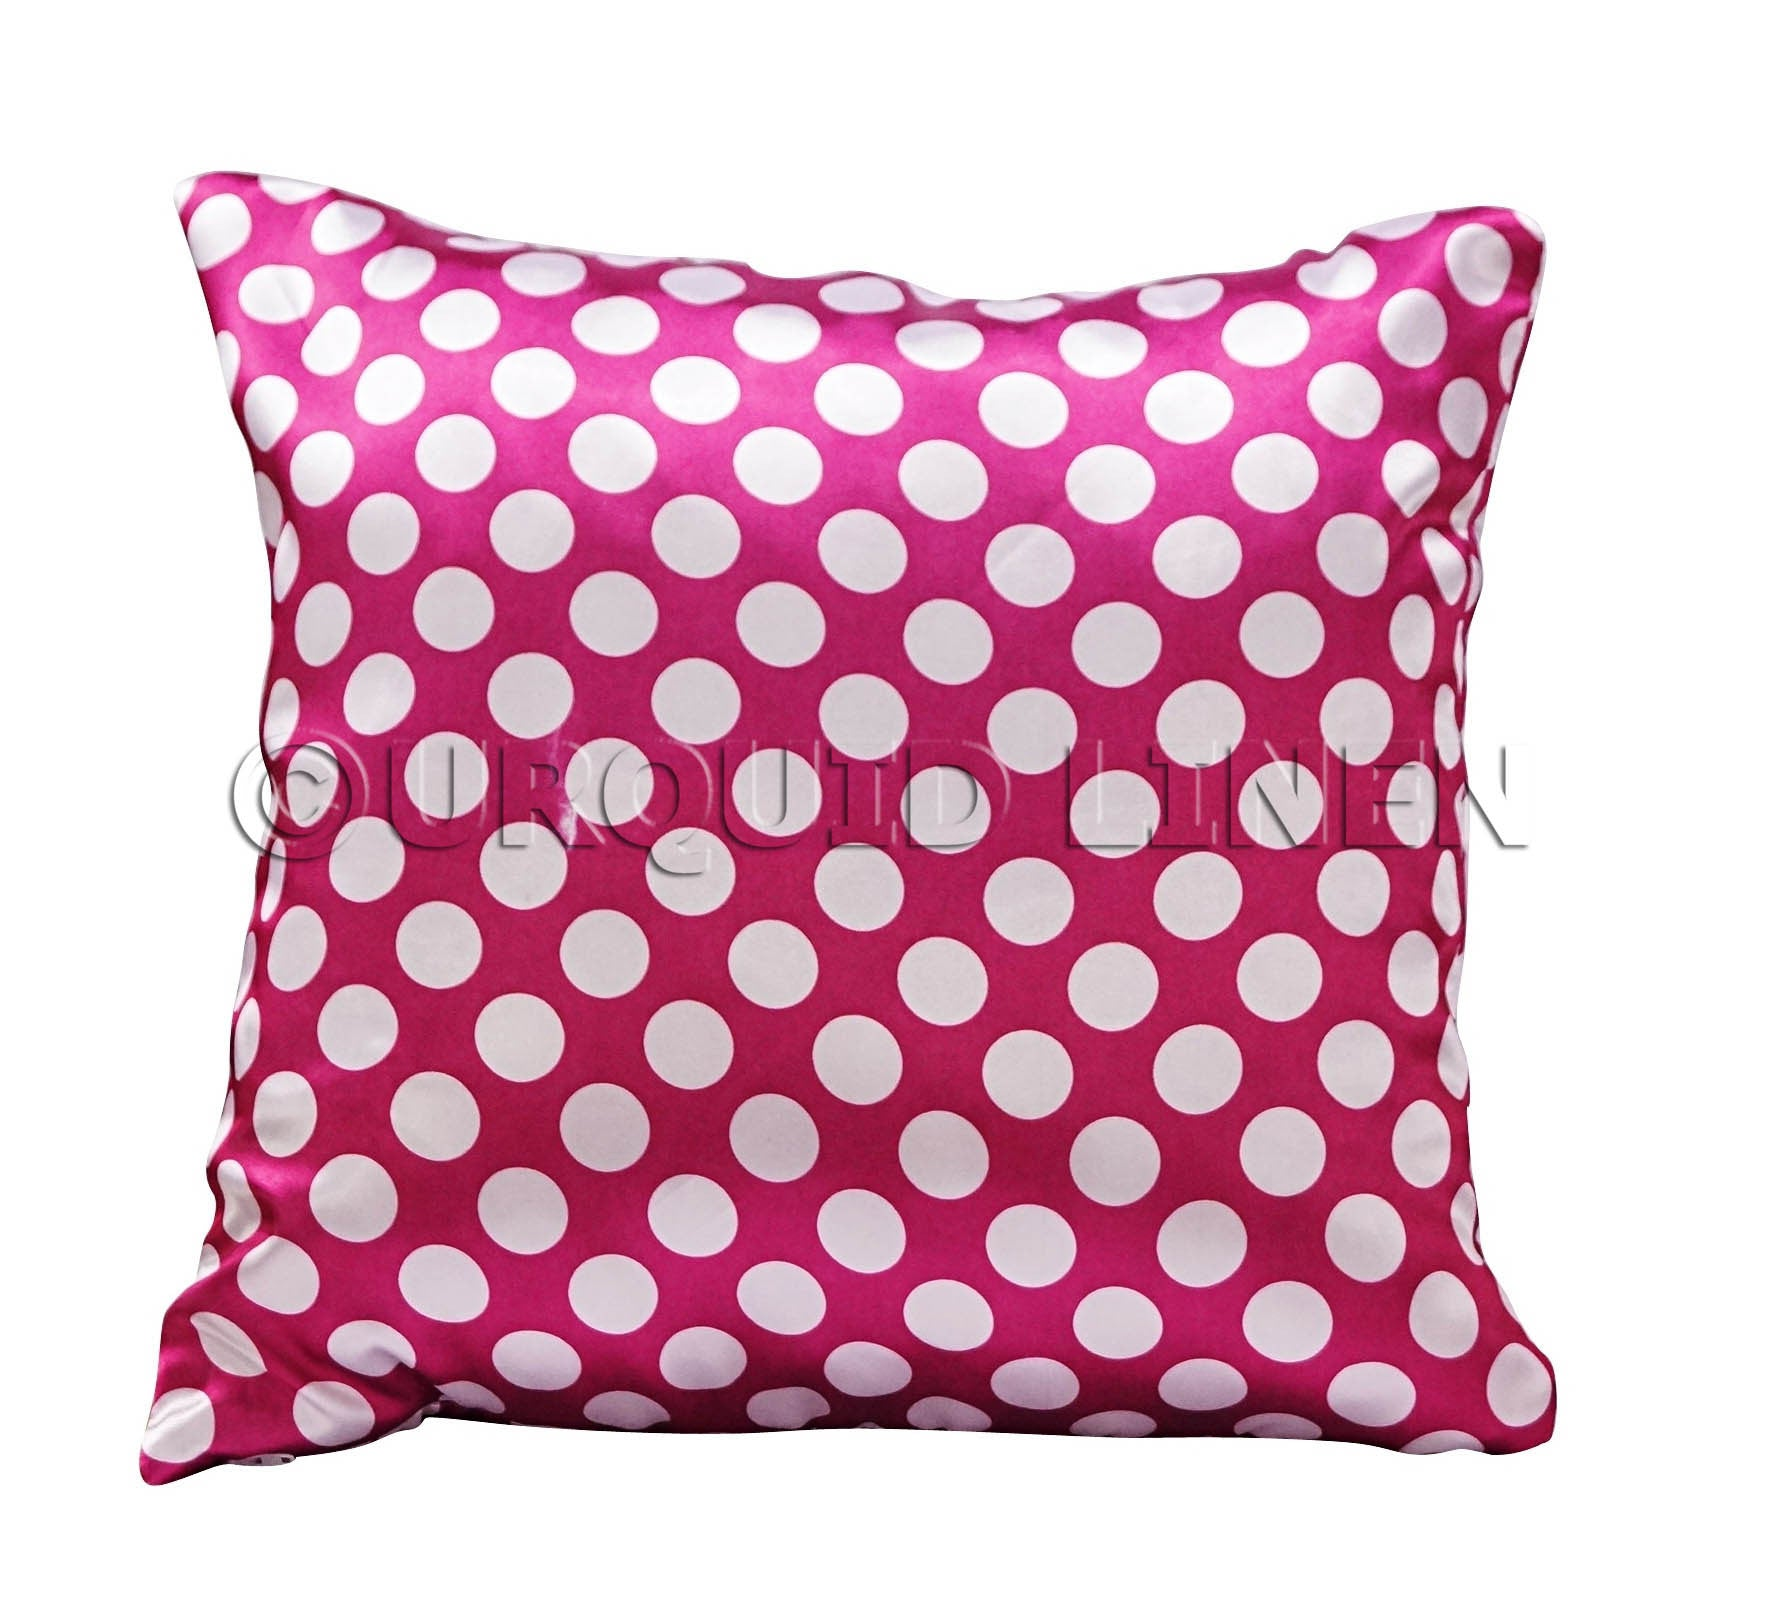 Polka Dot Charmeuse Satin Throw Pillow